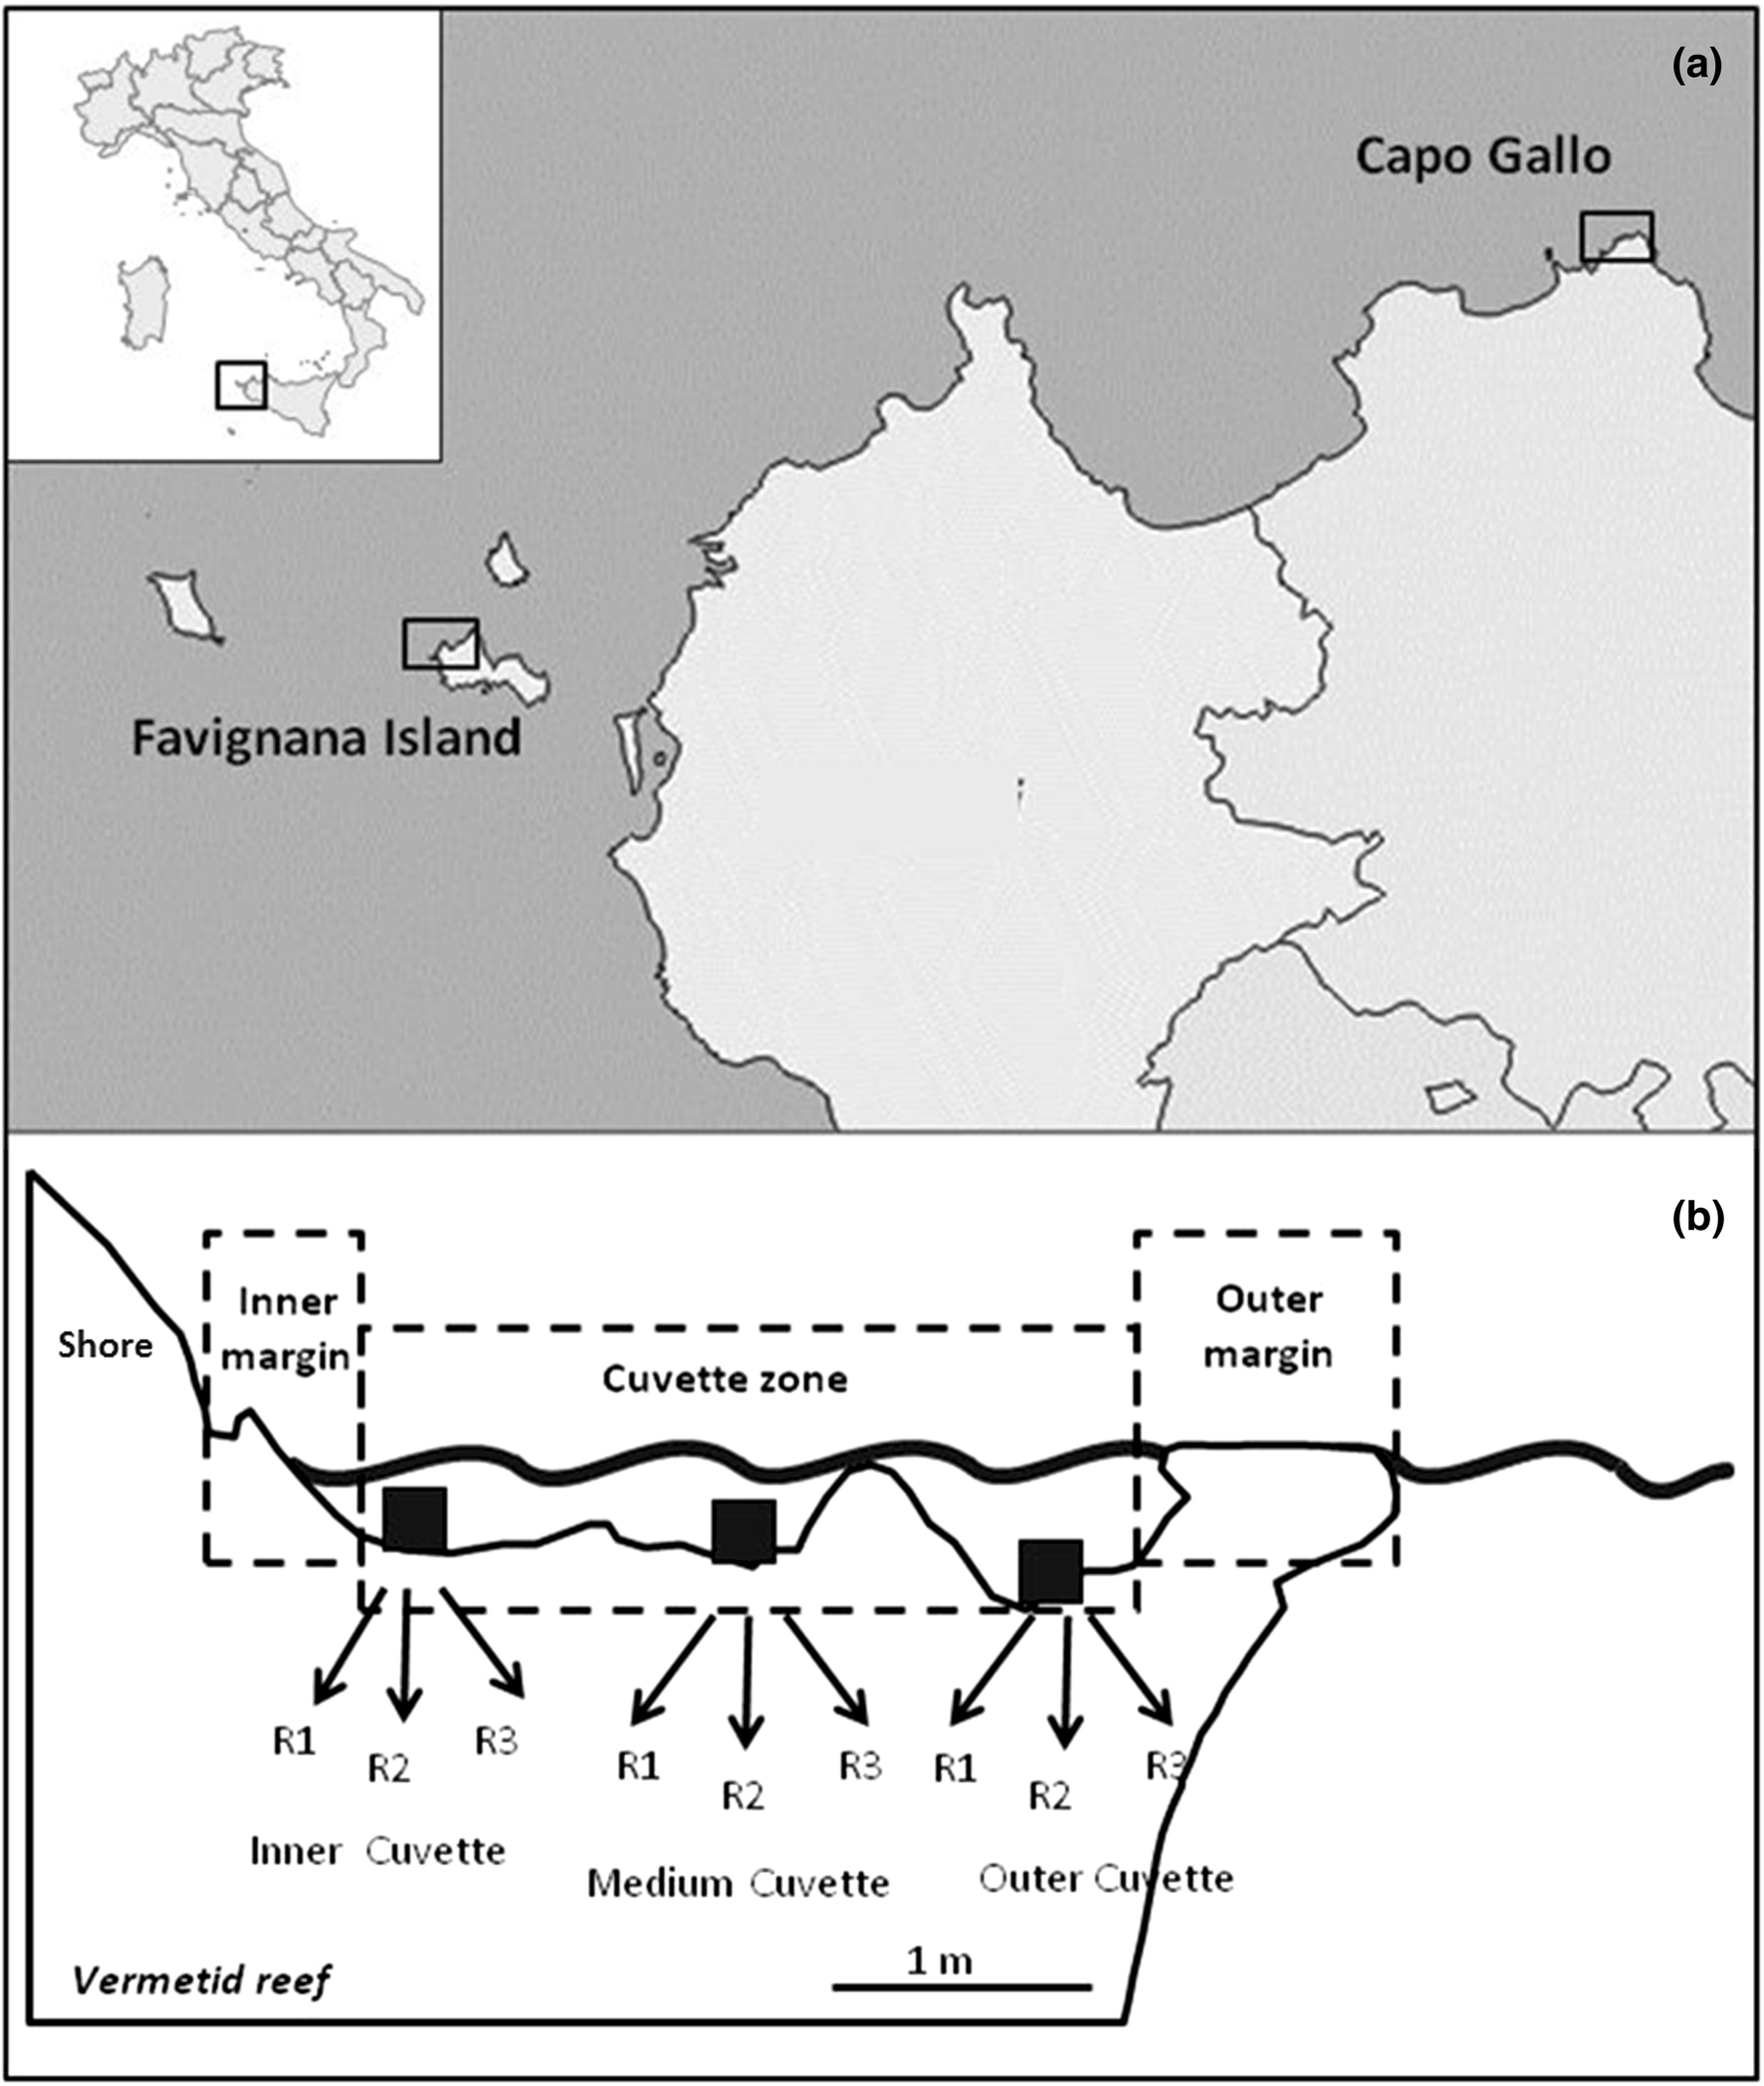 Meiofauna associated with vermetid reefs: the role of